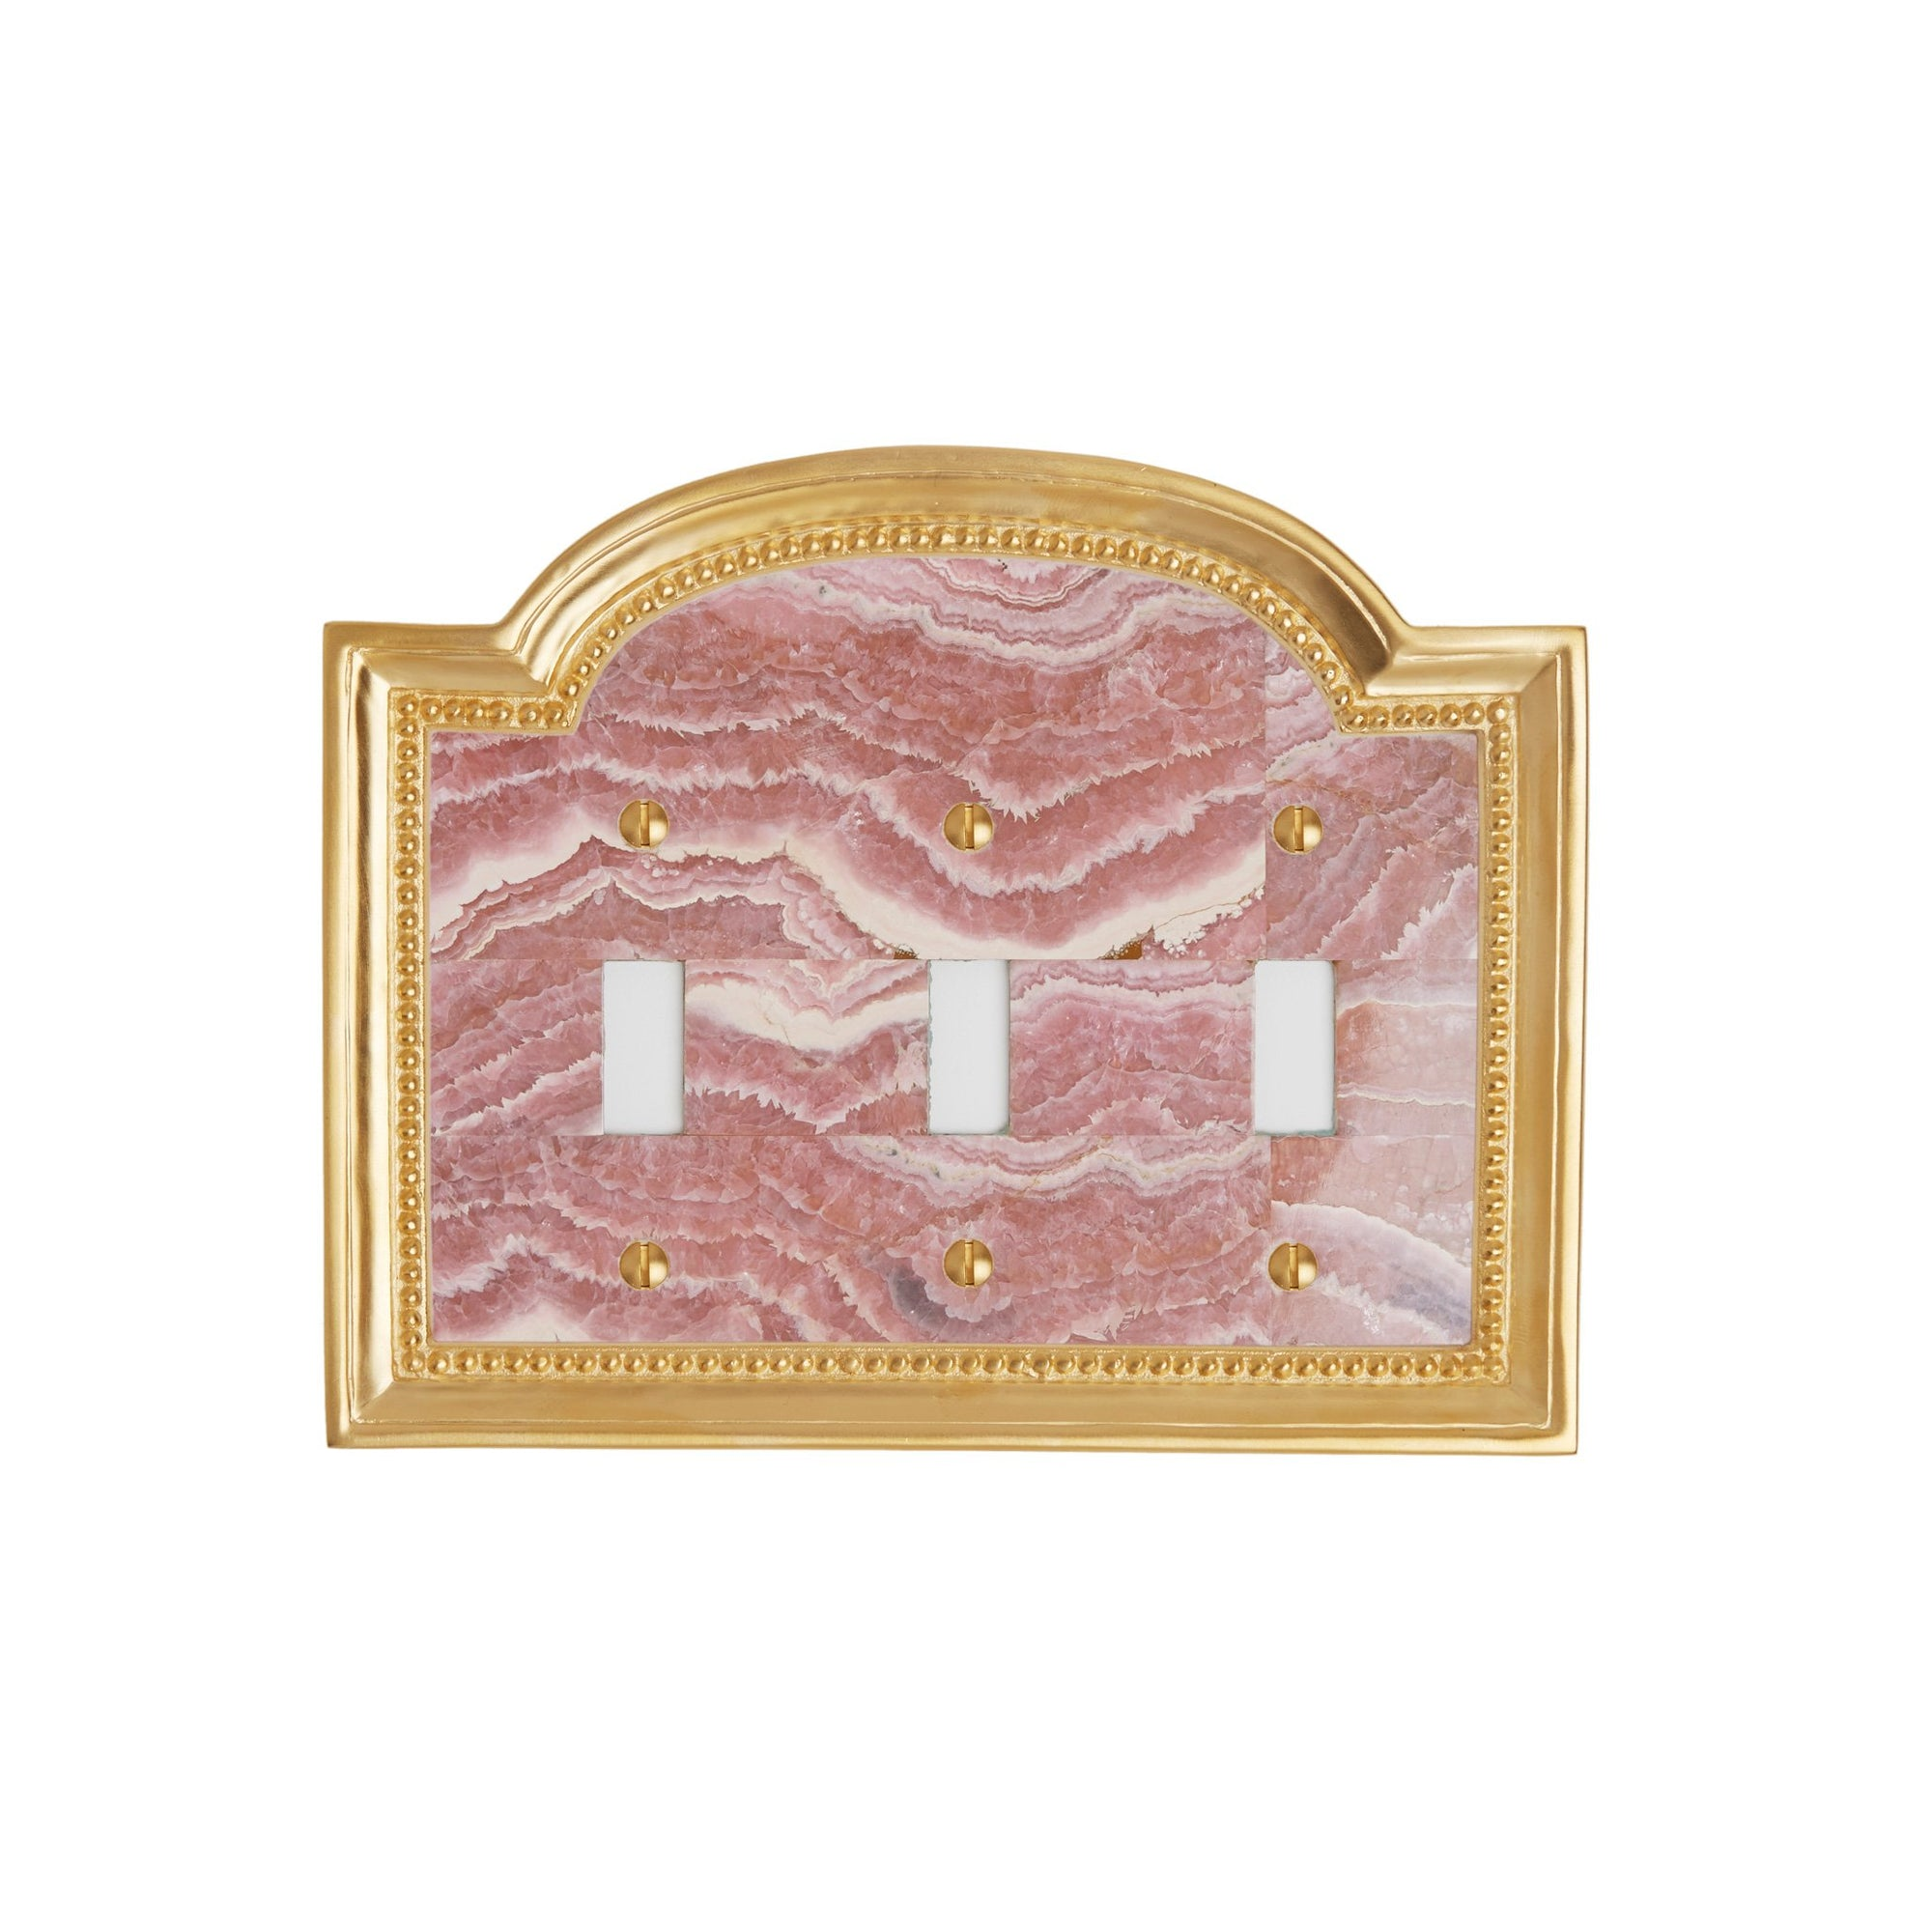 0470T-SWT-RHOD-GP Sherle Wagner International Rhodochrosite Semiprecious Classical Triple Switch Plate in Gold Plate metal finish